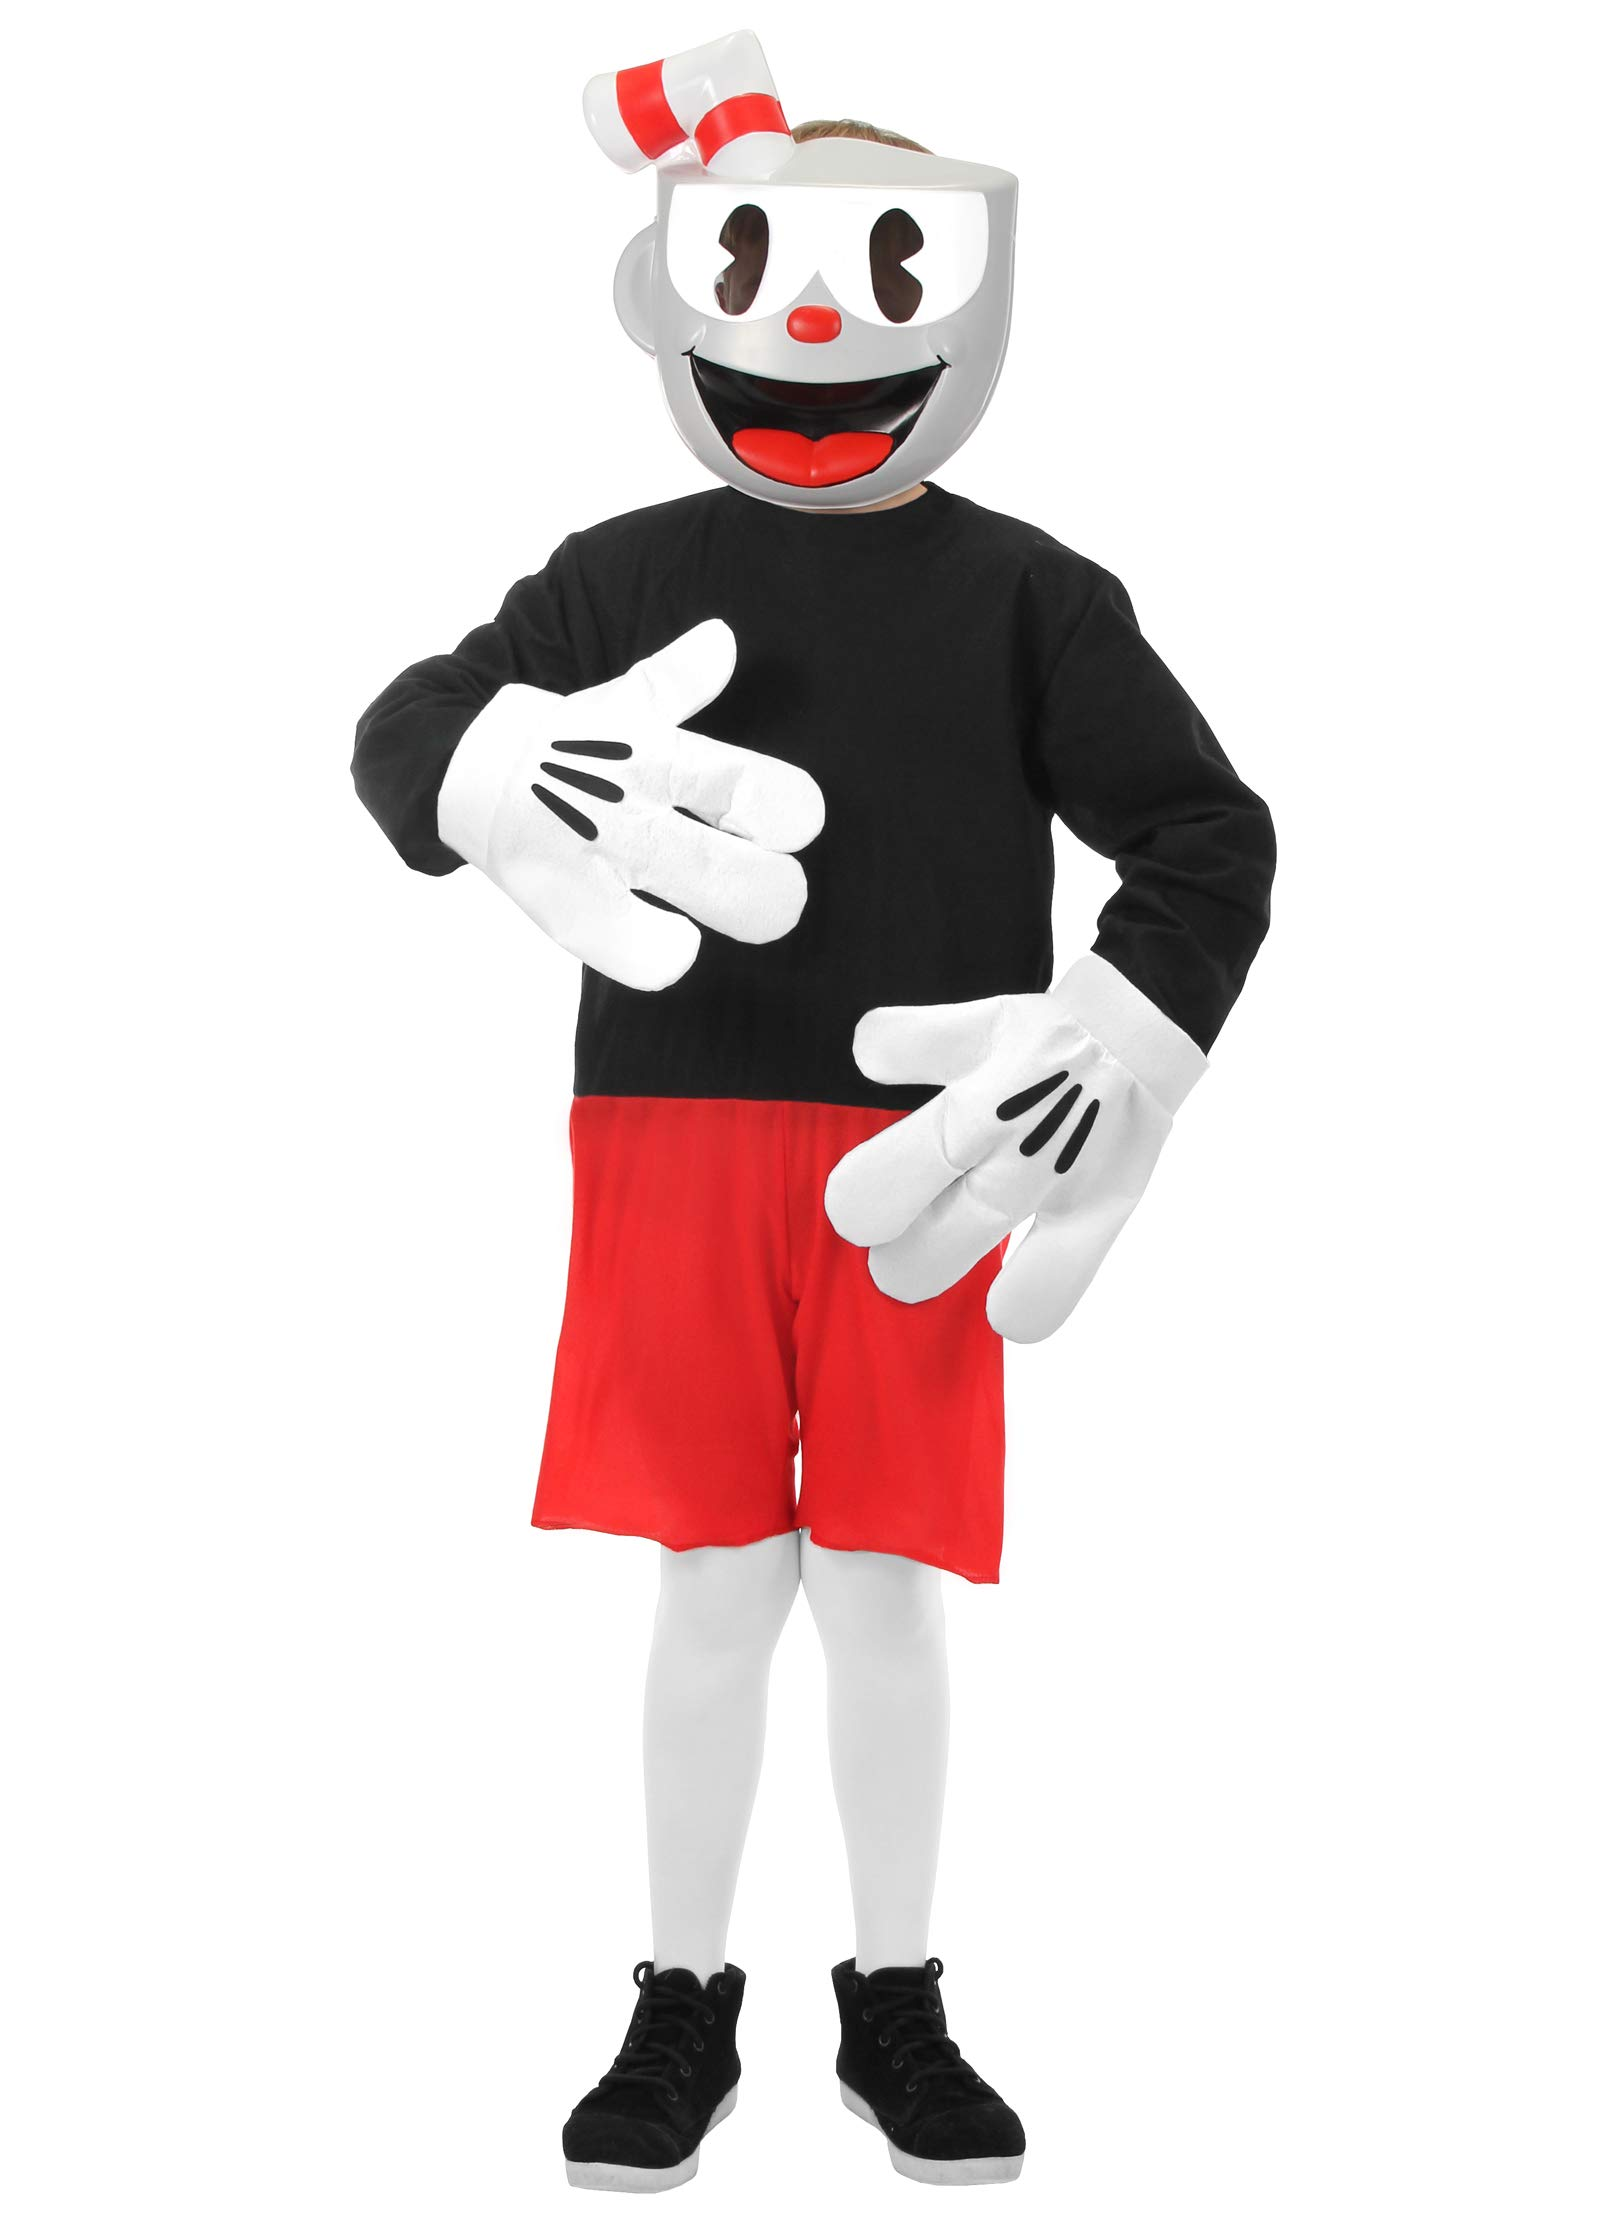 elope Cuphead Cosplay Basic Costume Kids 10-12 by elope (Image #1)